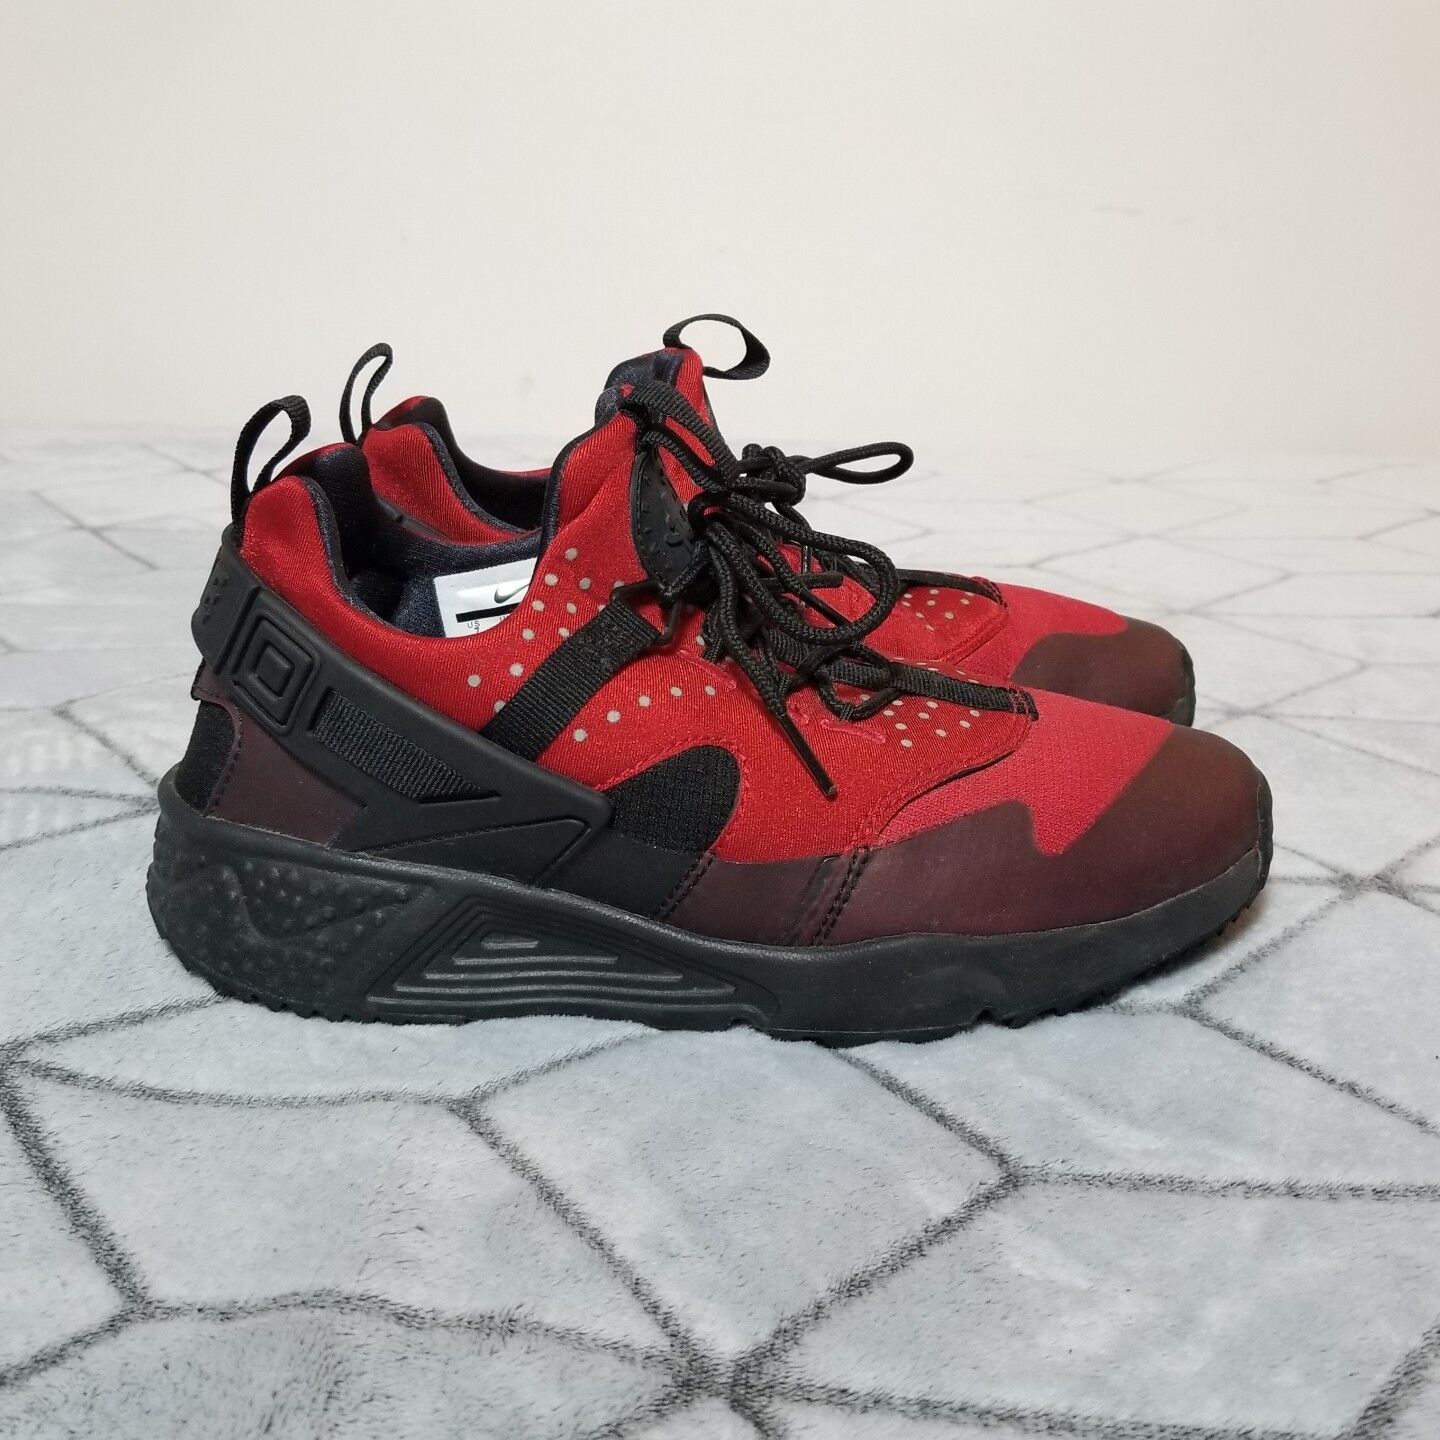 73d162a692 B31 Nike Air Huarache Utility (806807-600) Gym Red Athletic shoes Men Size